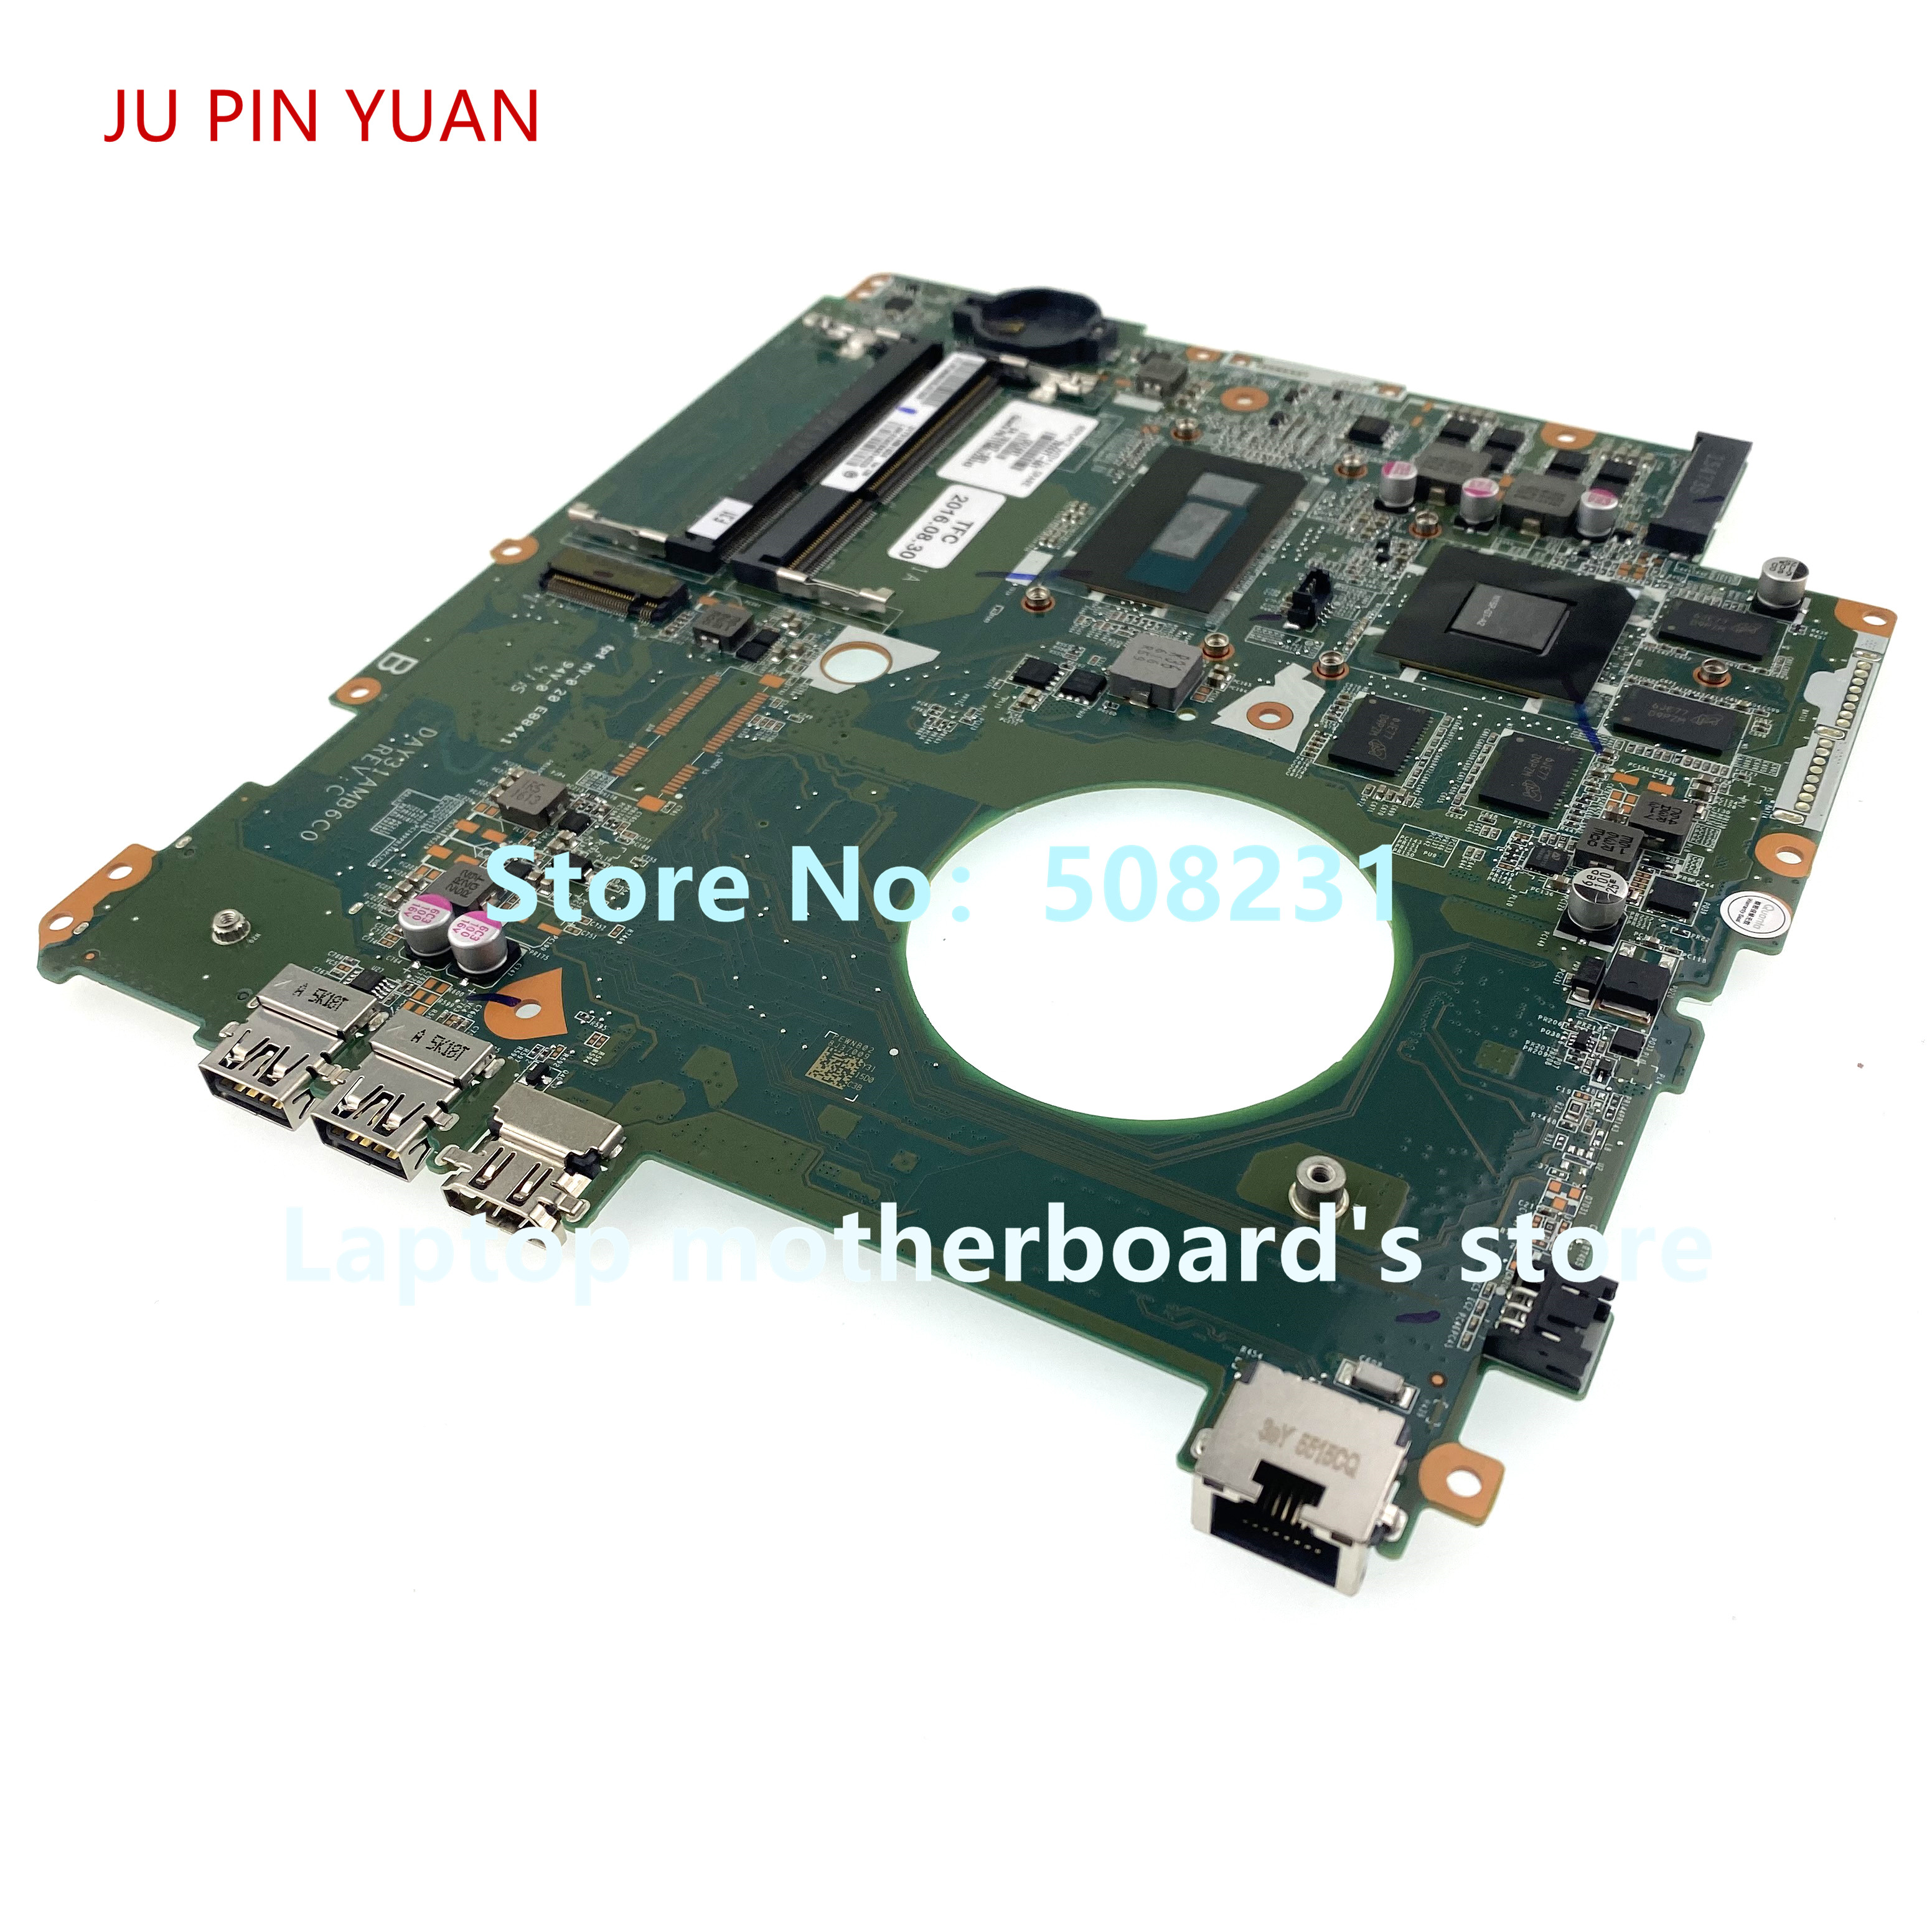 JU PIN YUAN 782621-601 782621-001 782621-501 laptop Motherboard for HP ENVY 17-K 17T-K 850M/4GB with i7-5500U 100% fully Tested